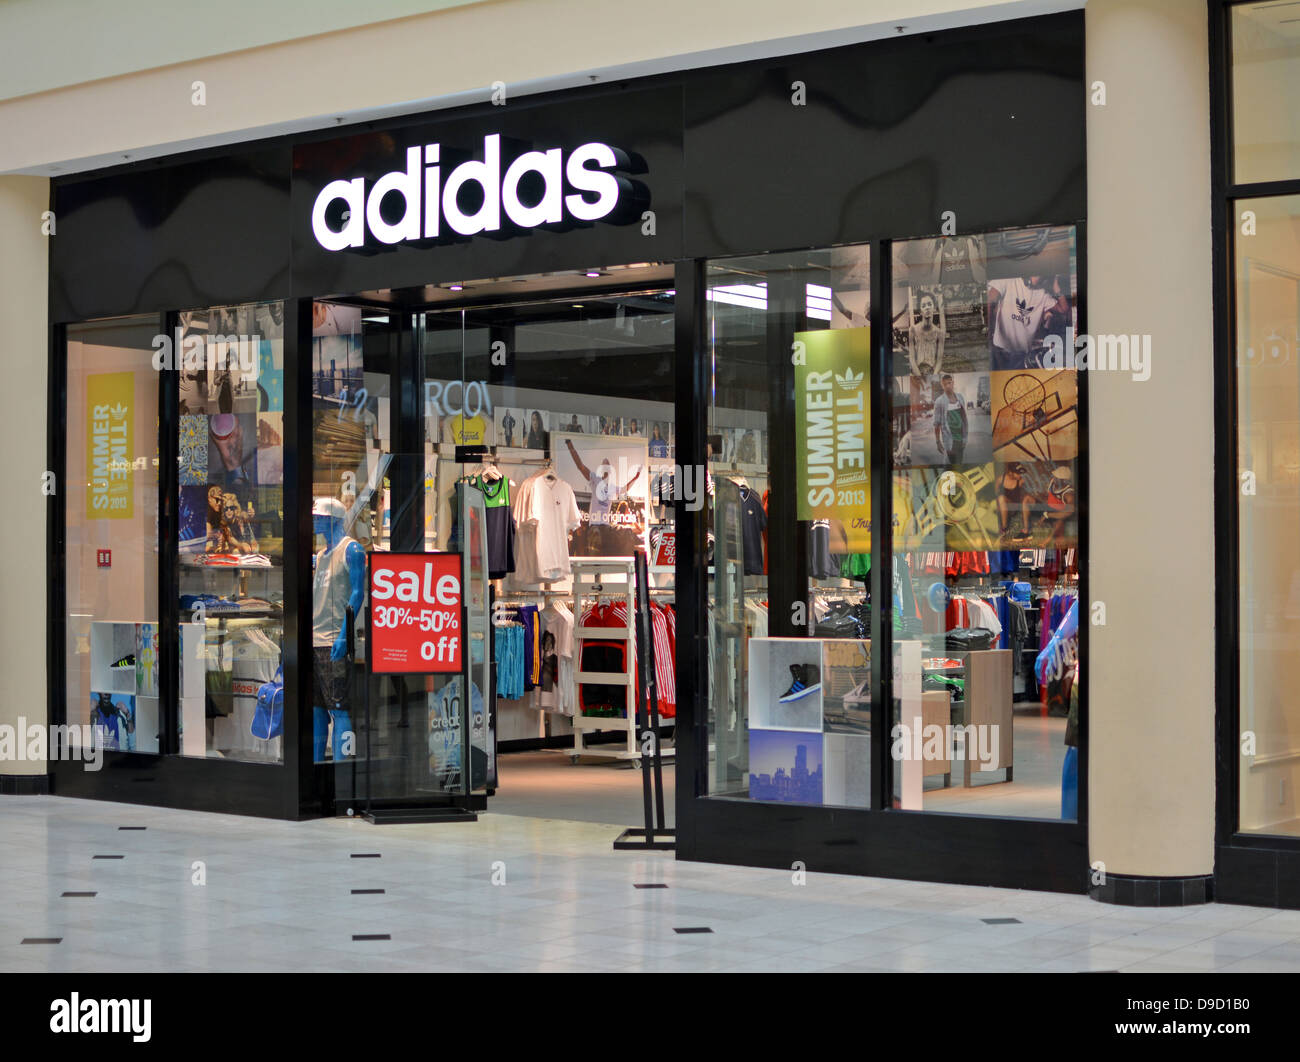 adidas factory outlet new york city